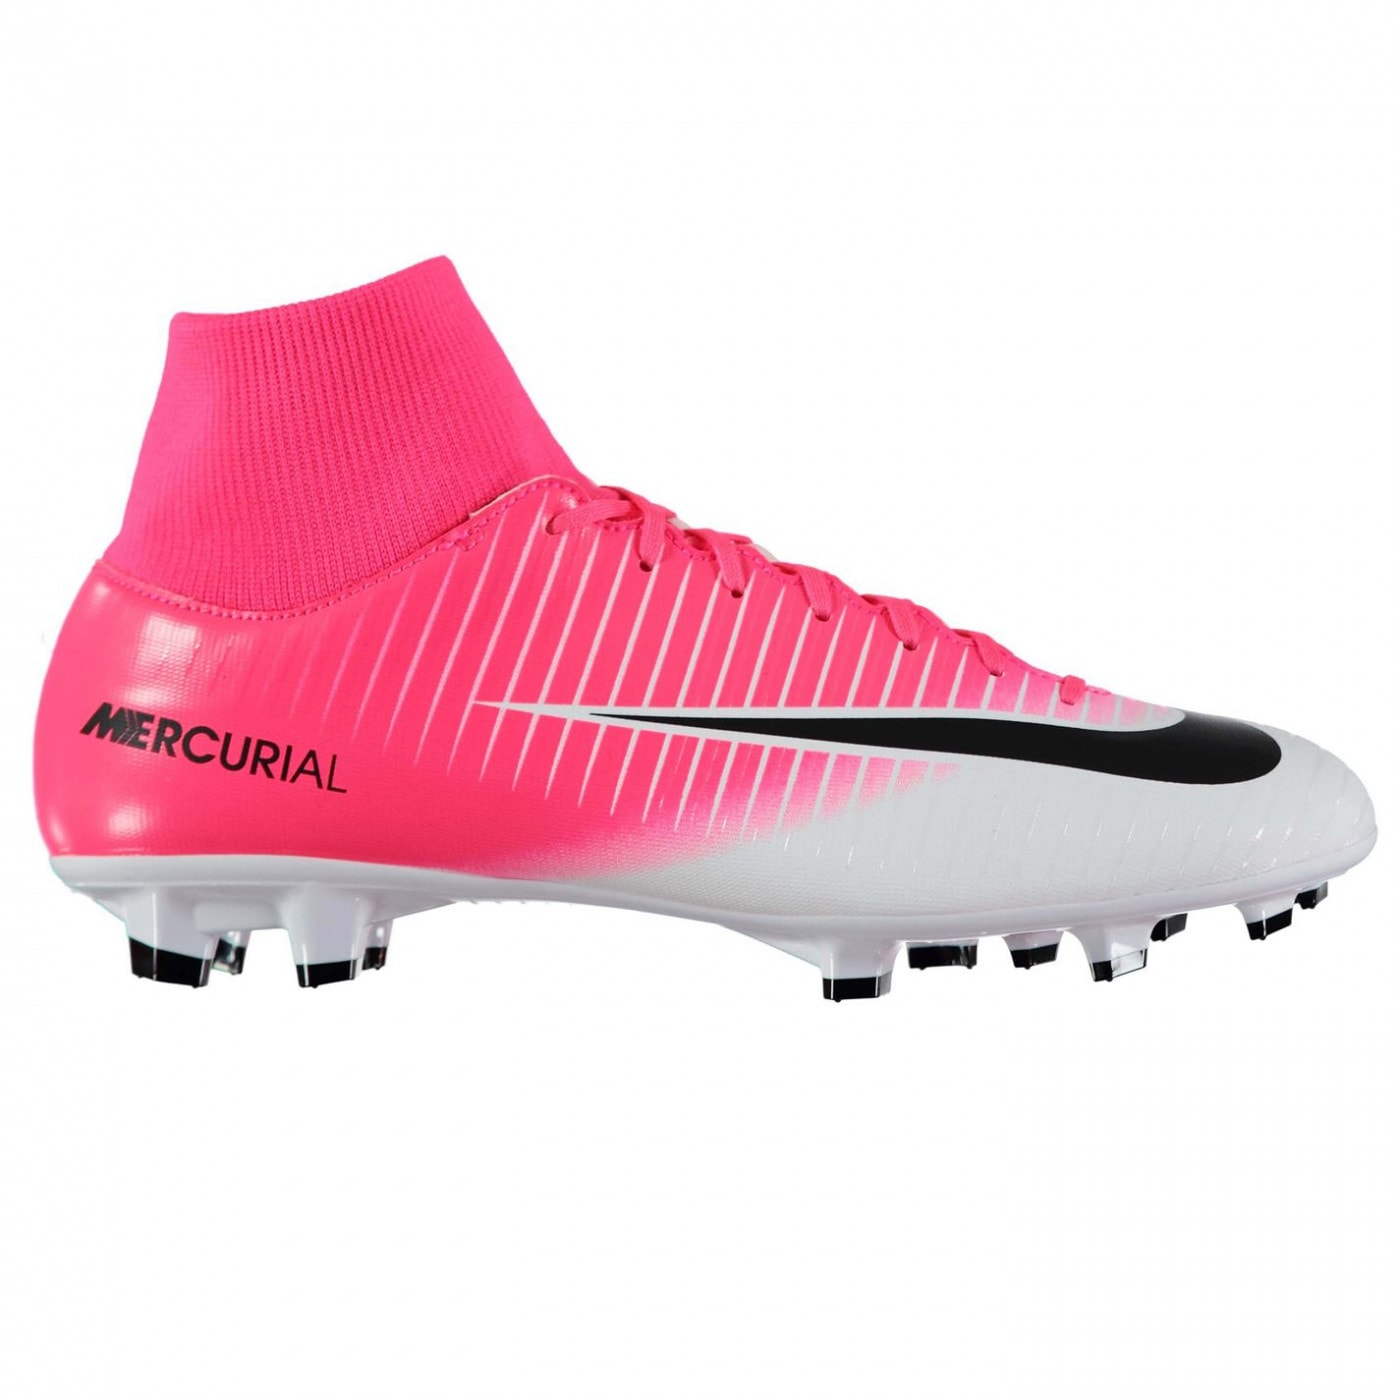 Nike Mercurial Victory Dynamic Fit FG Mens Football Boots